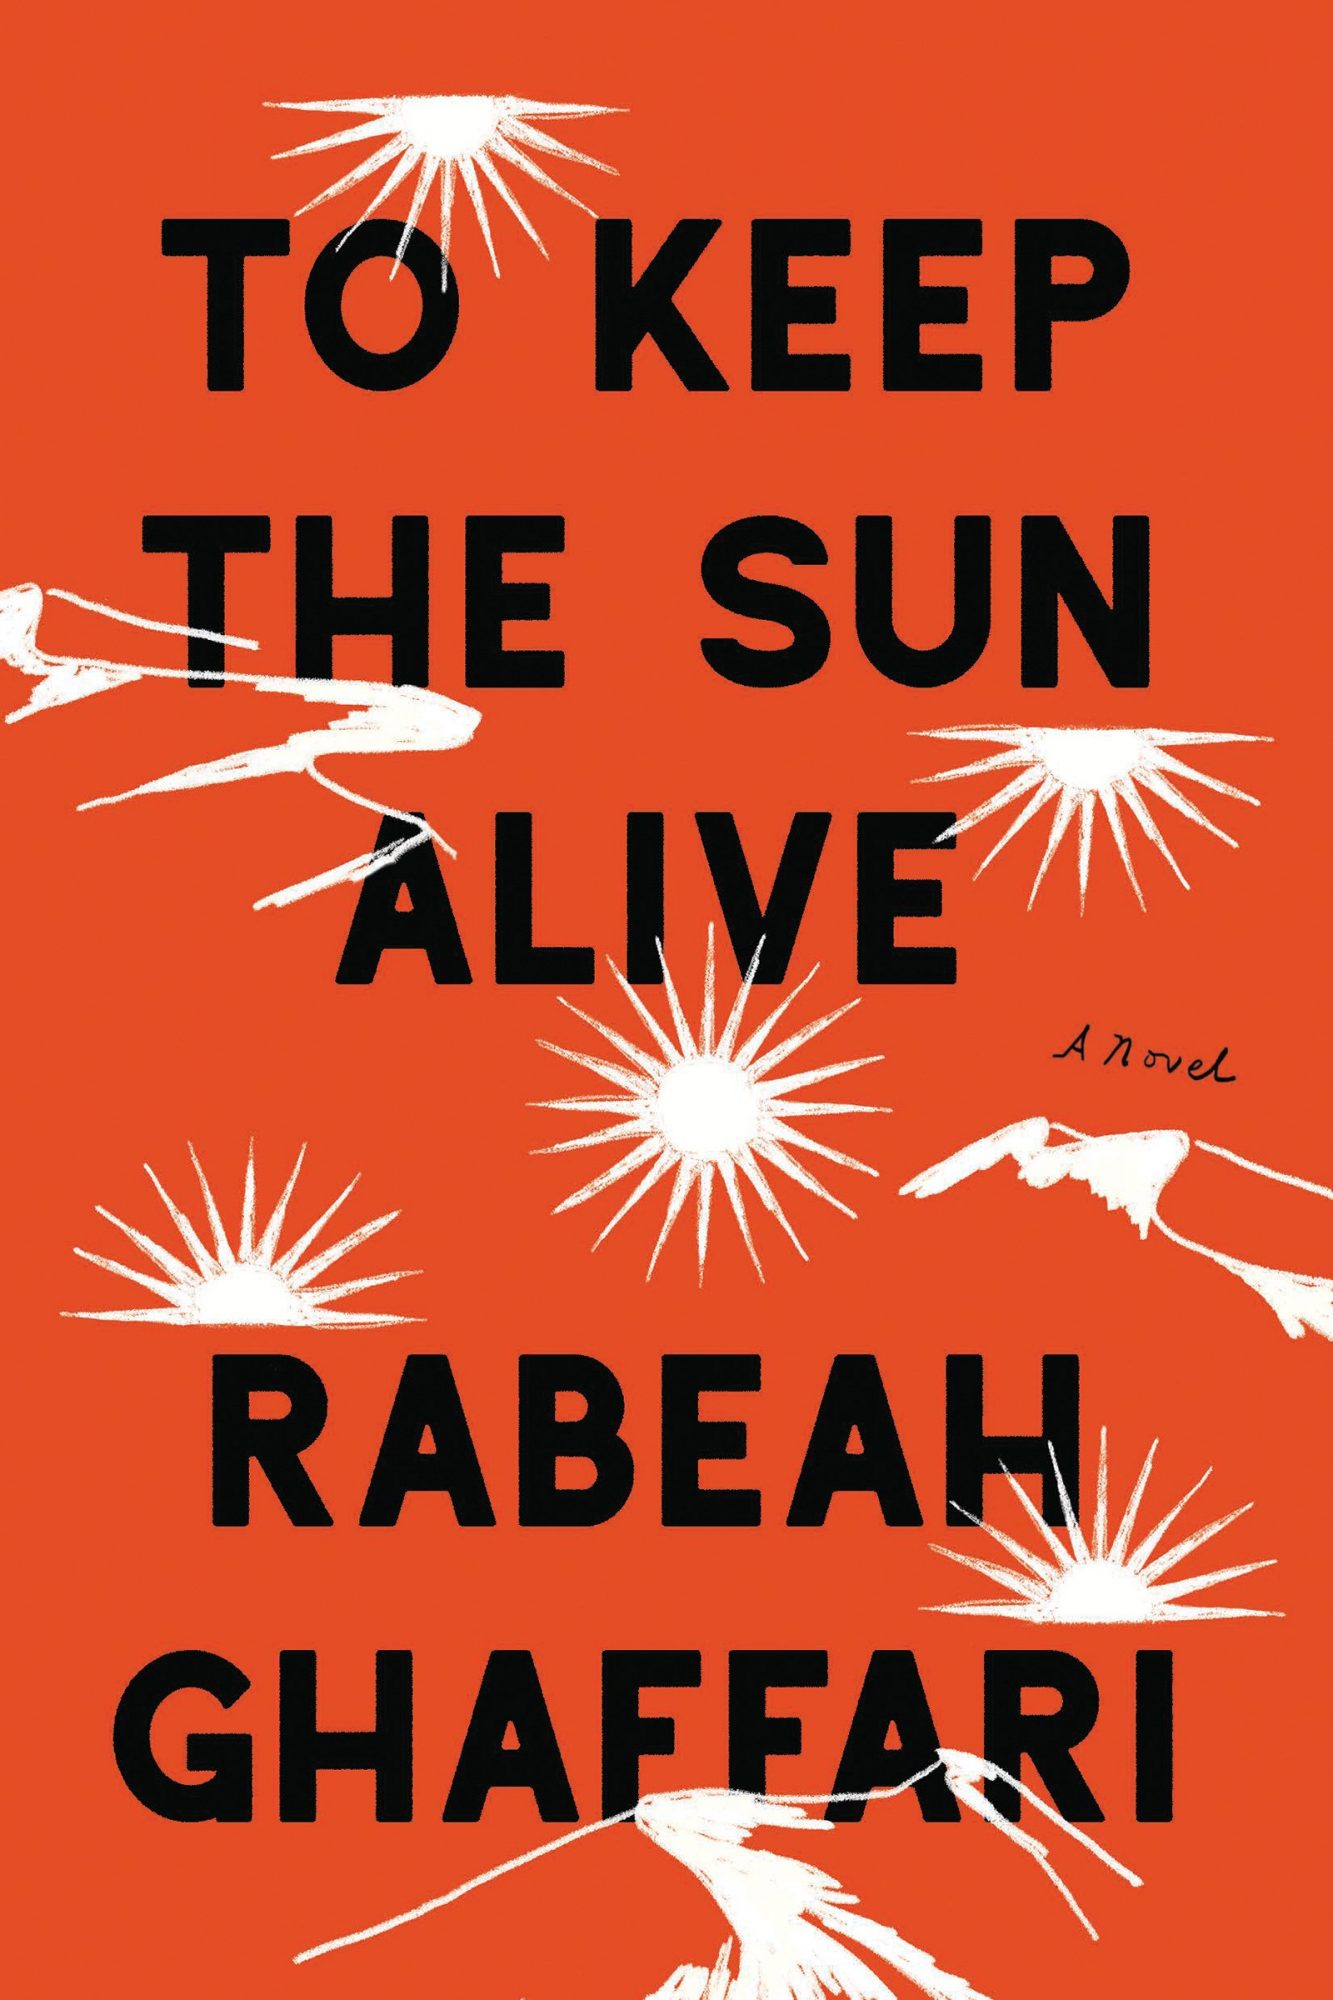 To Keep the Sun Alive by Rabeah Ghaffari